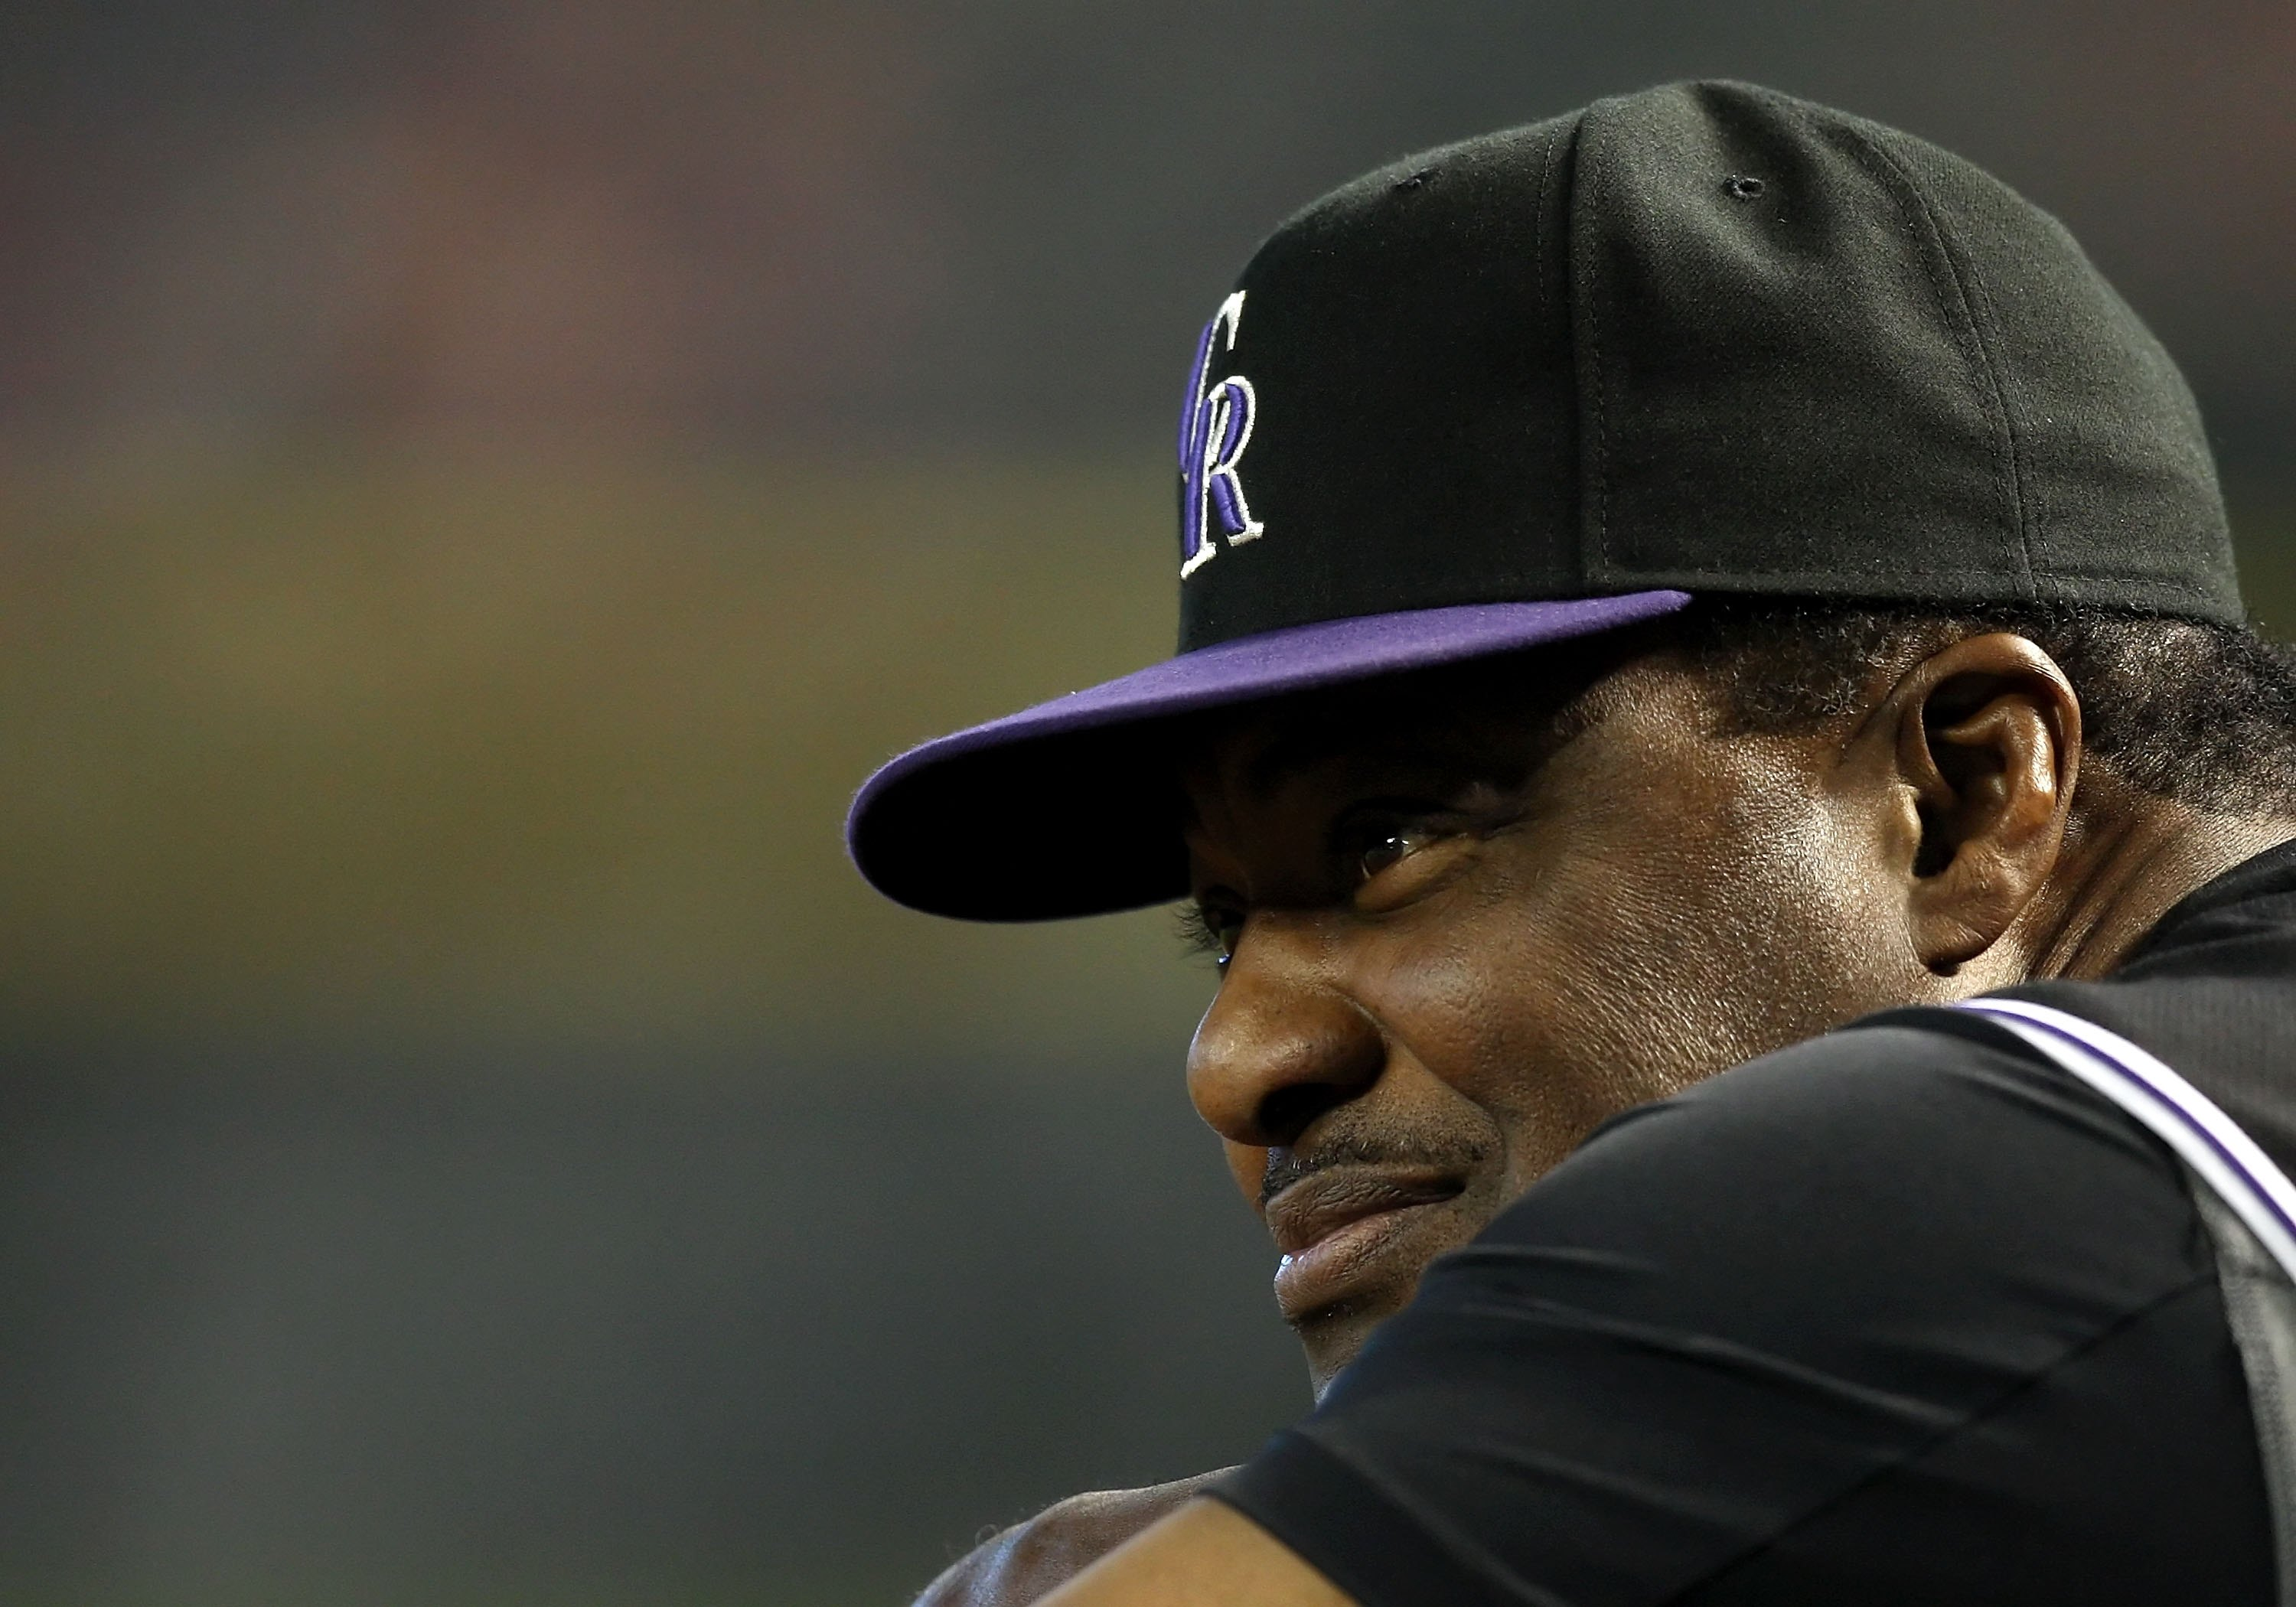 PHOENIX - APRIL 08:  Coach Don Baylor of the Colorado Rockies looks on during the game against the Arizona Diamondbacks at Chase Field on April 8, 2009 in Phoenix, Arizona. The Rockies defeated the Diamondbacks 9-2.  (Photo by Christian Petersen/Getty Ima